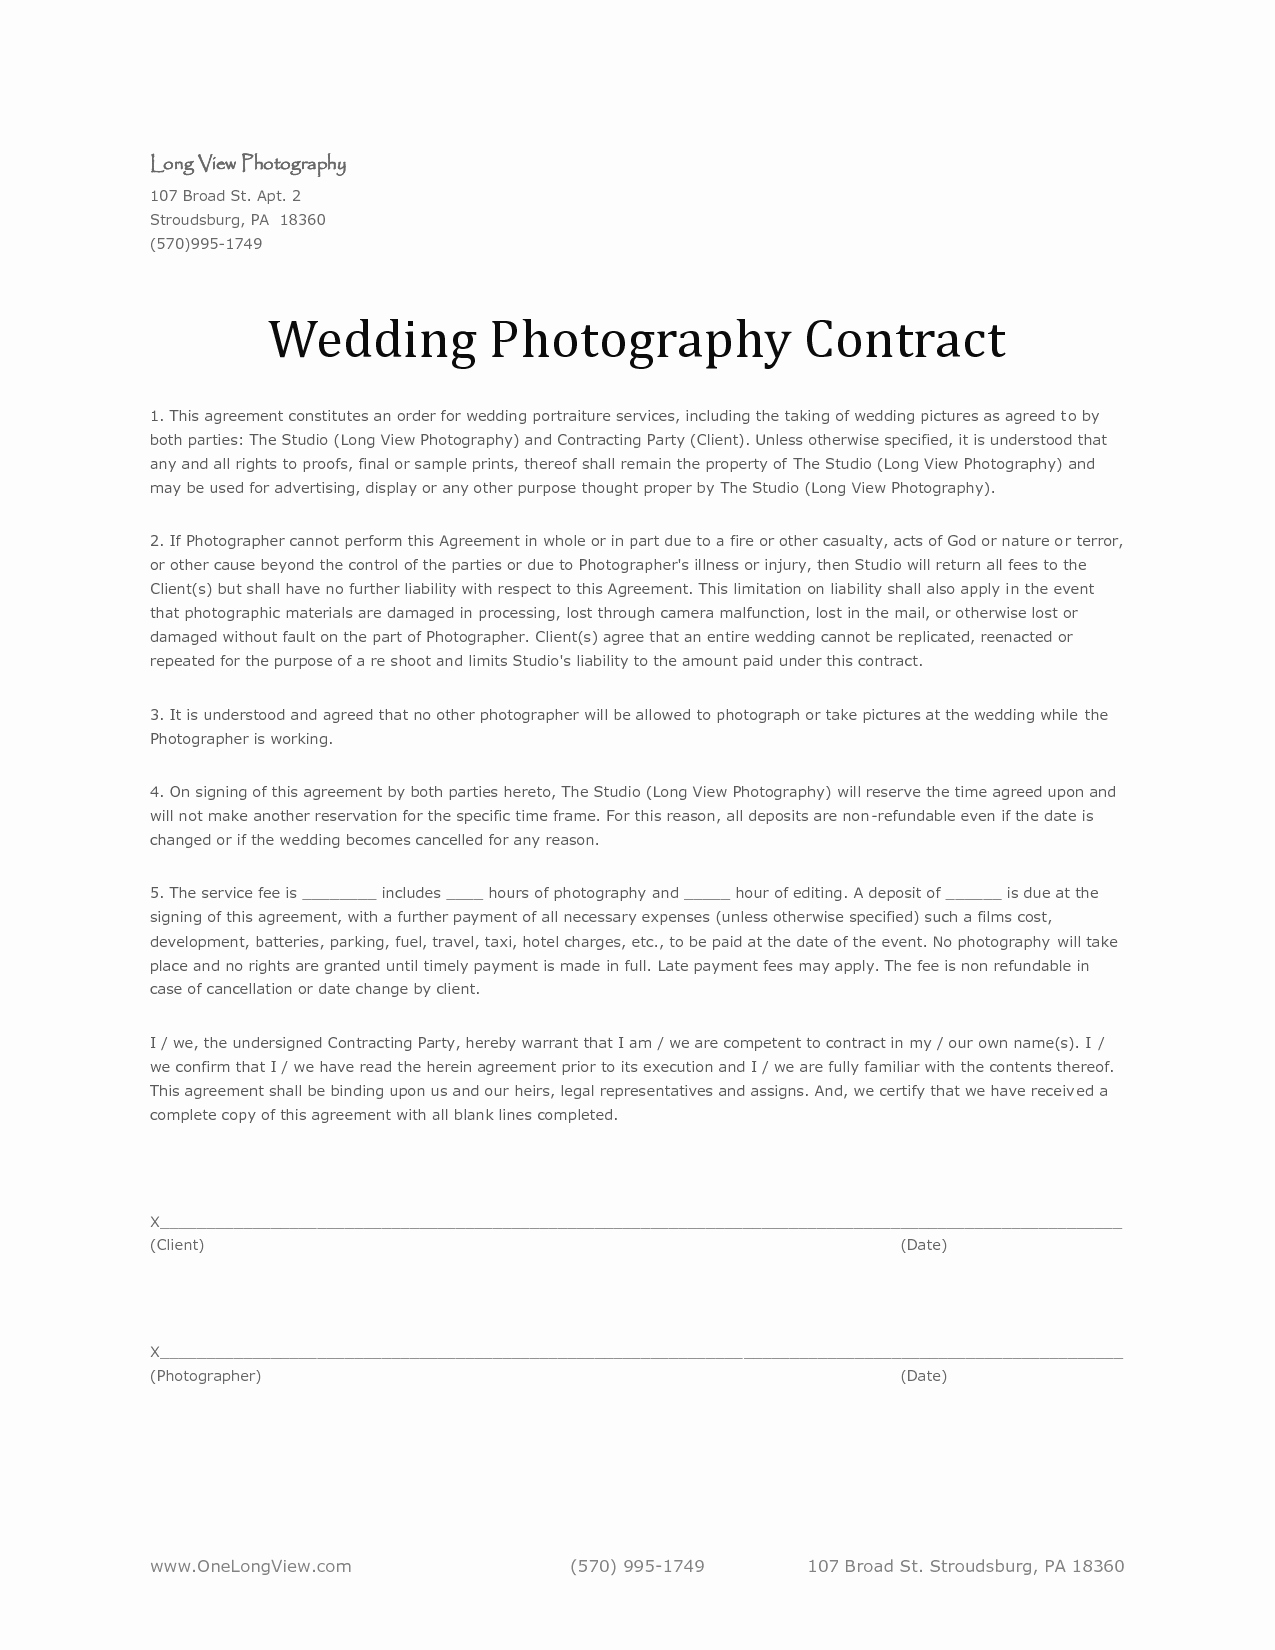 Free Wedding Photography Contract Template Awesome Wedding Graphy Agreement Free Printable Documents